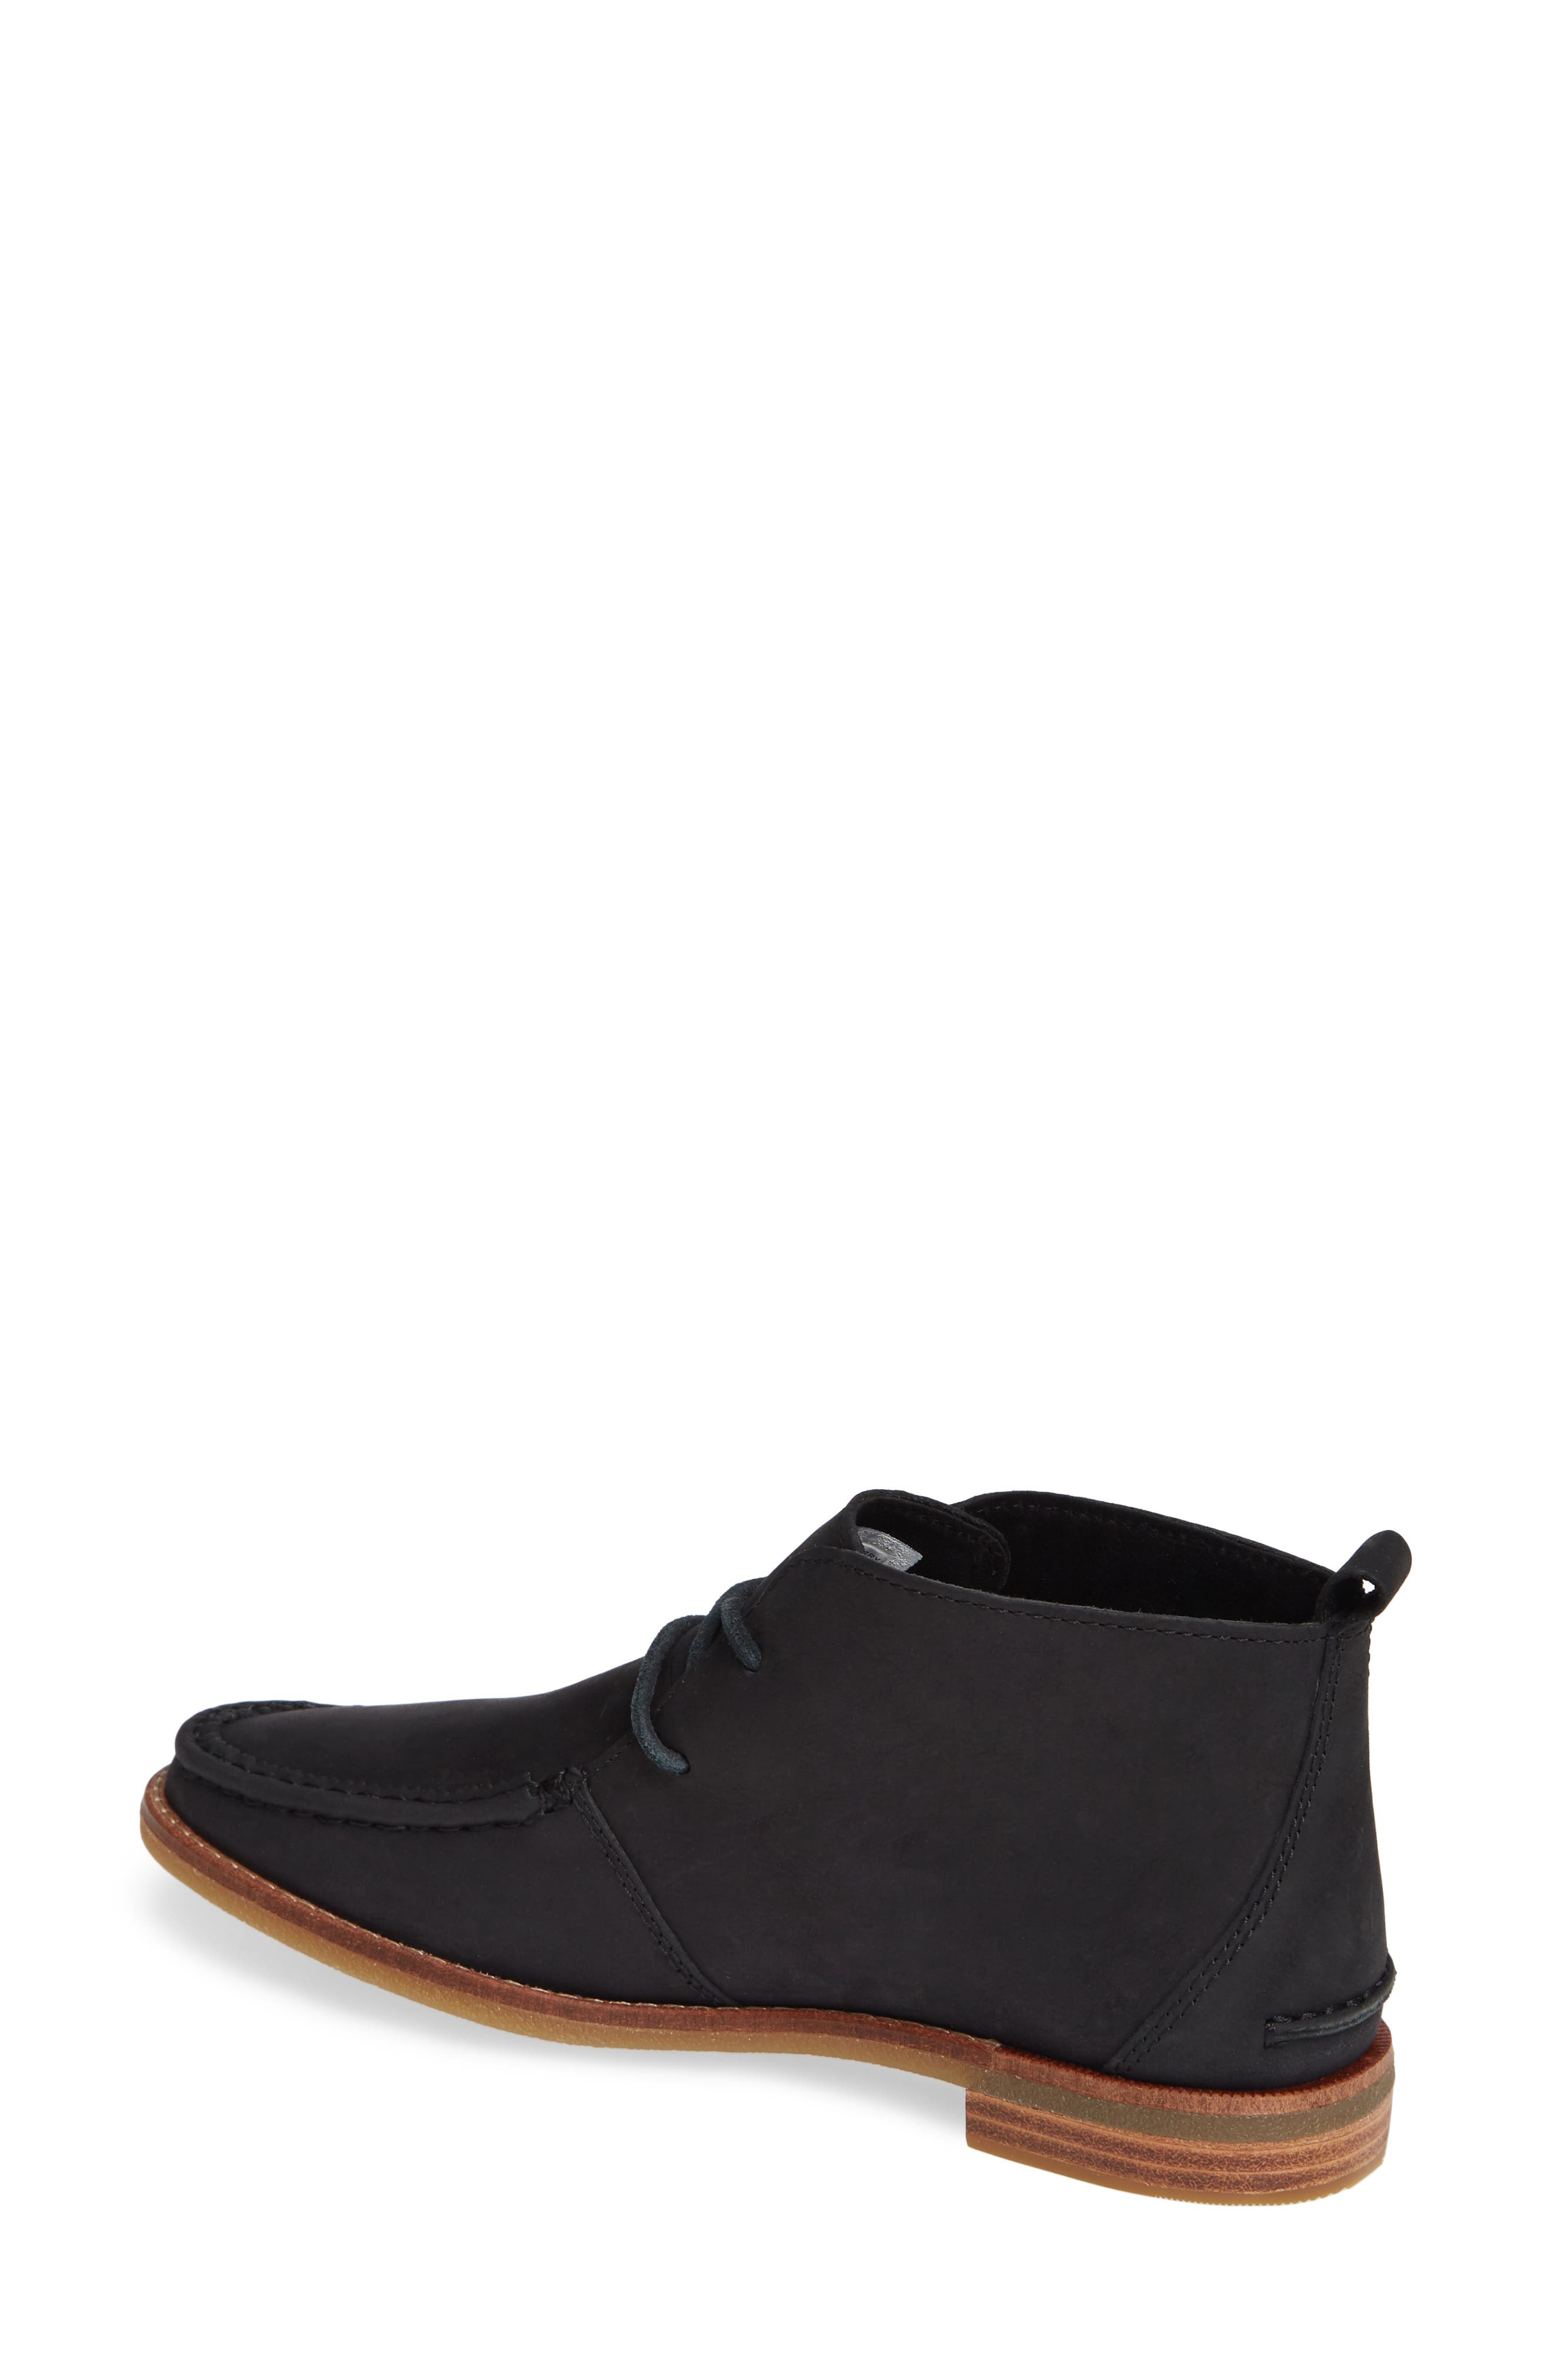 Seaport Tahoe Chukka Bootie,                             Alternate thumbnail 2, color,                             BLACK SUEDE